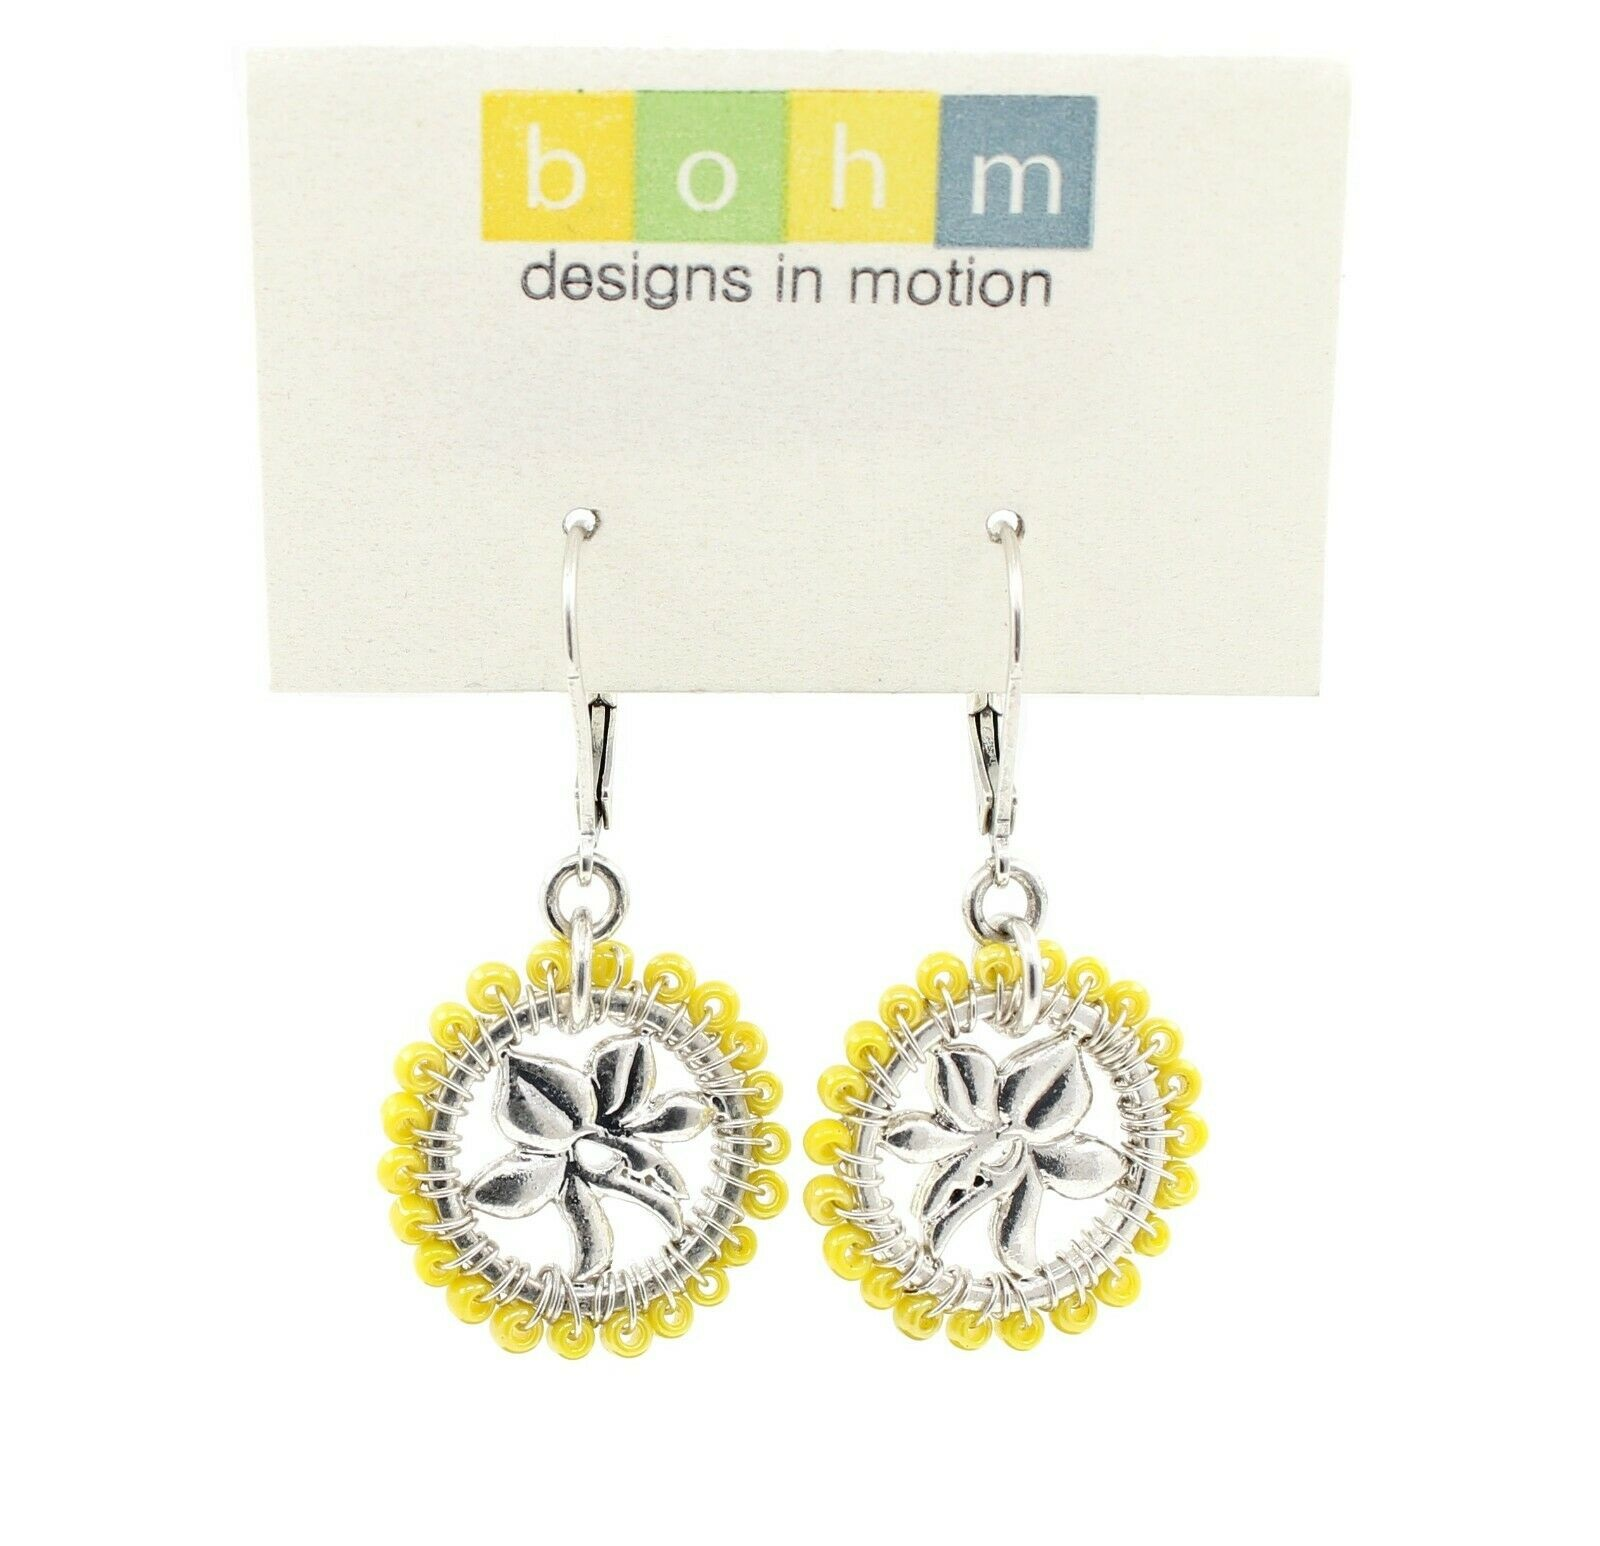 Bohm Floral Folklore - Orchid Silhouette Earrings - Silver Plate/Yellow Beads BNWT